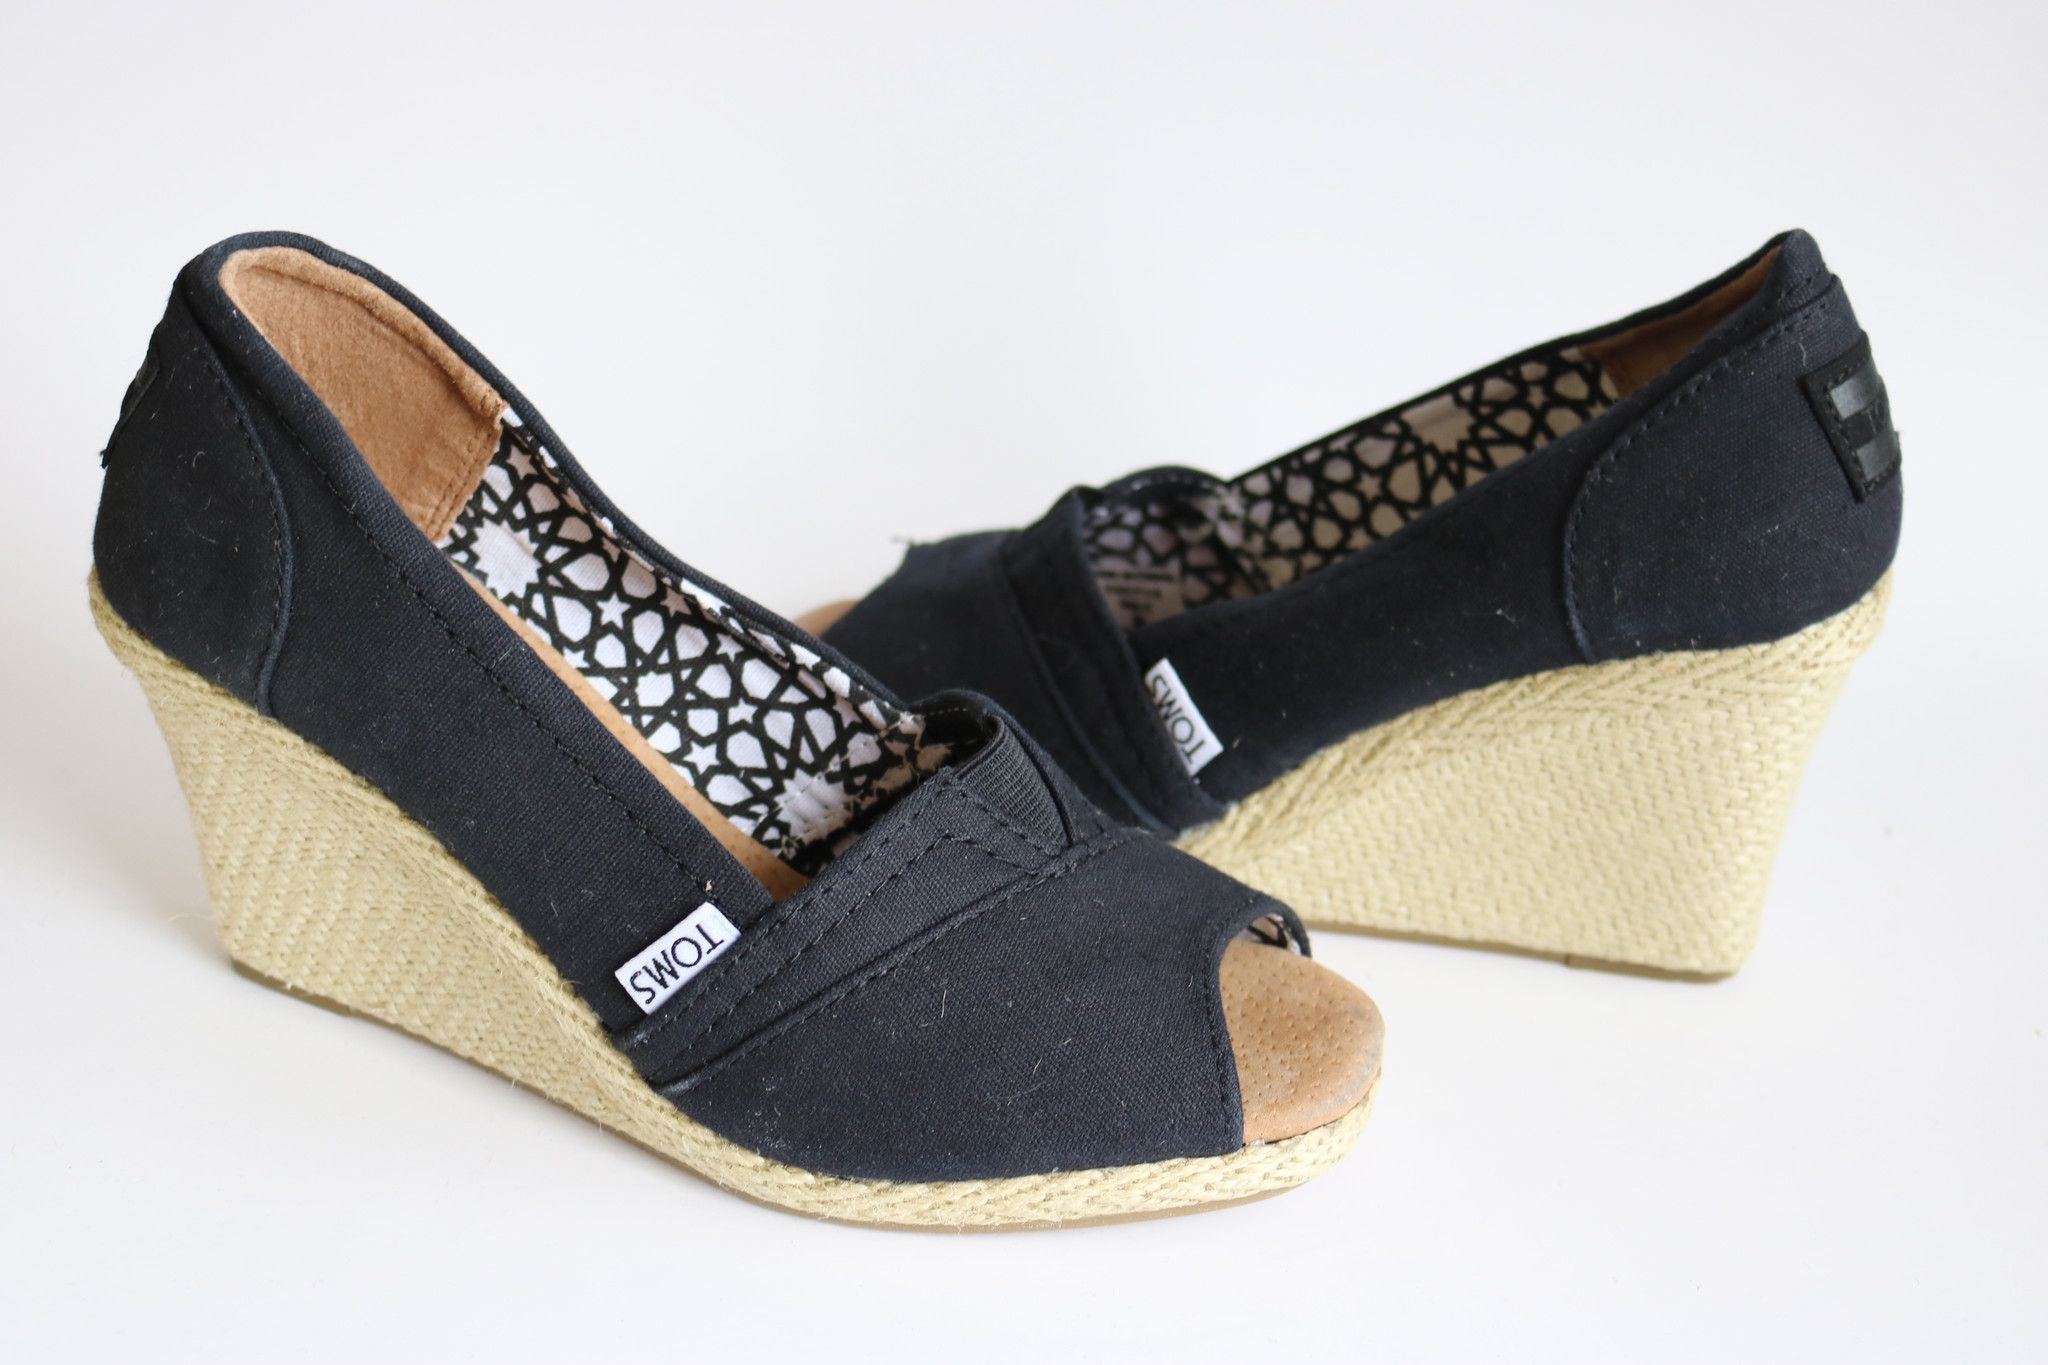 be0516e613a Toms Black Womens Canvas Wedge High Heels Peep Toe Sandals Shoes Size 6.5 - Wedge  heel-height is 3 1 4   - Natural Canvas upper and lining materials for ...